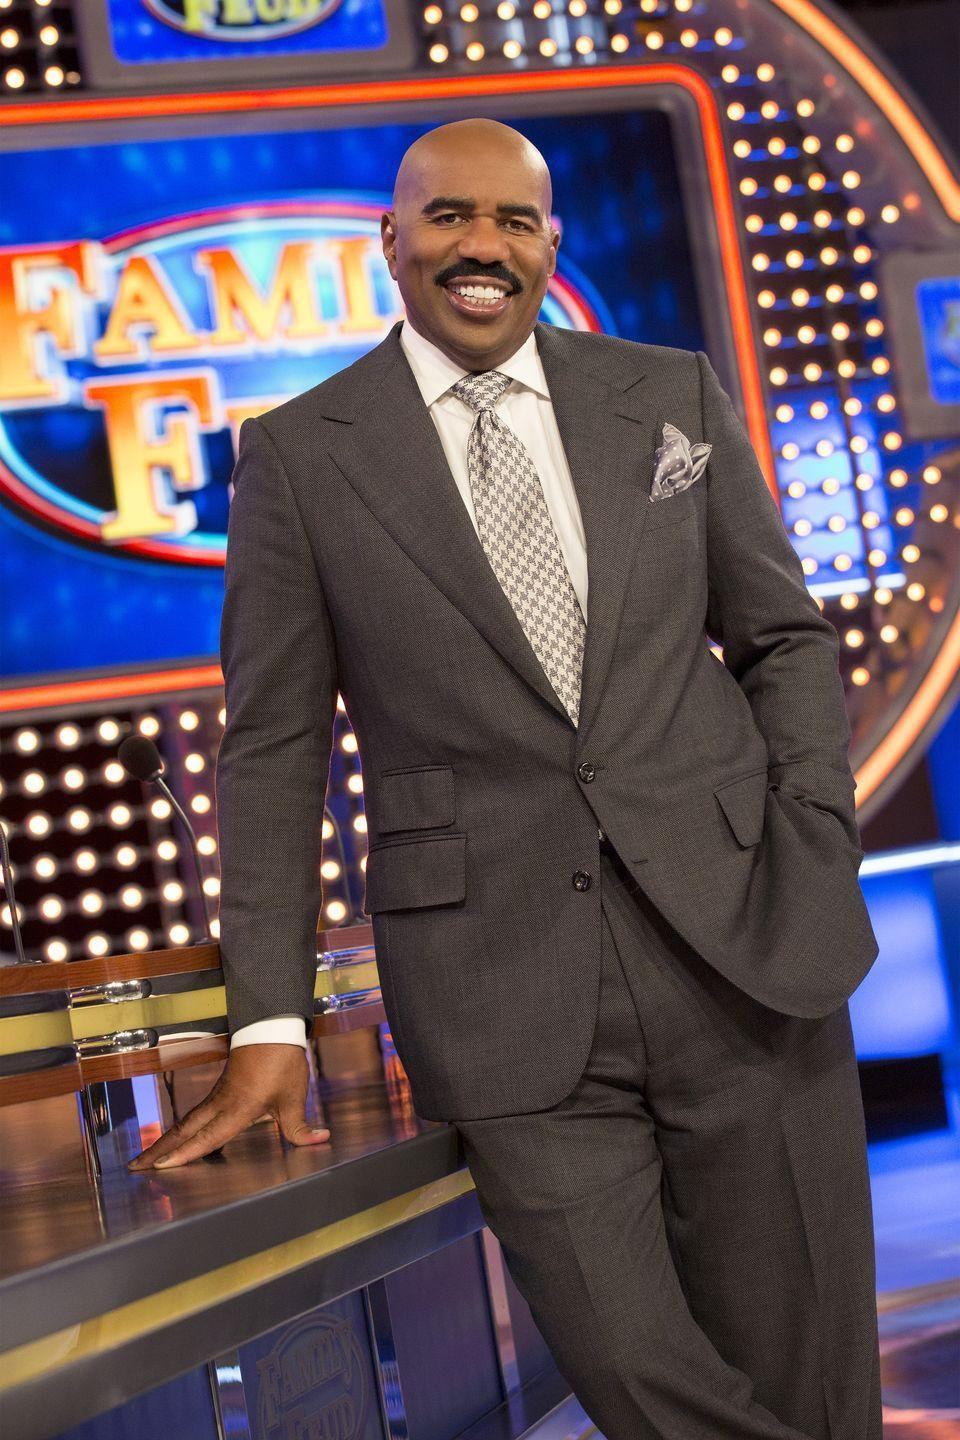 """<p>During his time at Kent State University, Steve Harvey pledged and became a <a href=""""https://oppf.org/about-omega/notable-omegas/"""" rel=""""nofollow noopener"""" target=""""_blank"""" data-ylk=""""slk:member of Omega Psi Phi"""" class=""""link rapid-noclick-resp"""">member of Omega Psi Phi</a>. The comedian is now committed to helping others access an education and has <a href=""""https://www.usatoday.com/story/entertainment/celebrities/2019/07/01/college-costs-comedian-steve-harvey-fund-8-kent-state-freshman/1615692001/"""" rel=""""nofollow noopener"""" target=""""_blank"""" data-ylk=""""slk:created numerous scholarships at his alma mater"""" class=""""link rapid-noclick-resp"""">created numerous scholarships at his alma mater</a> for students. </p>"""